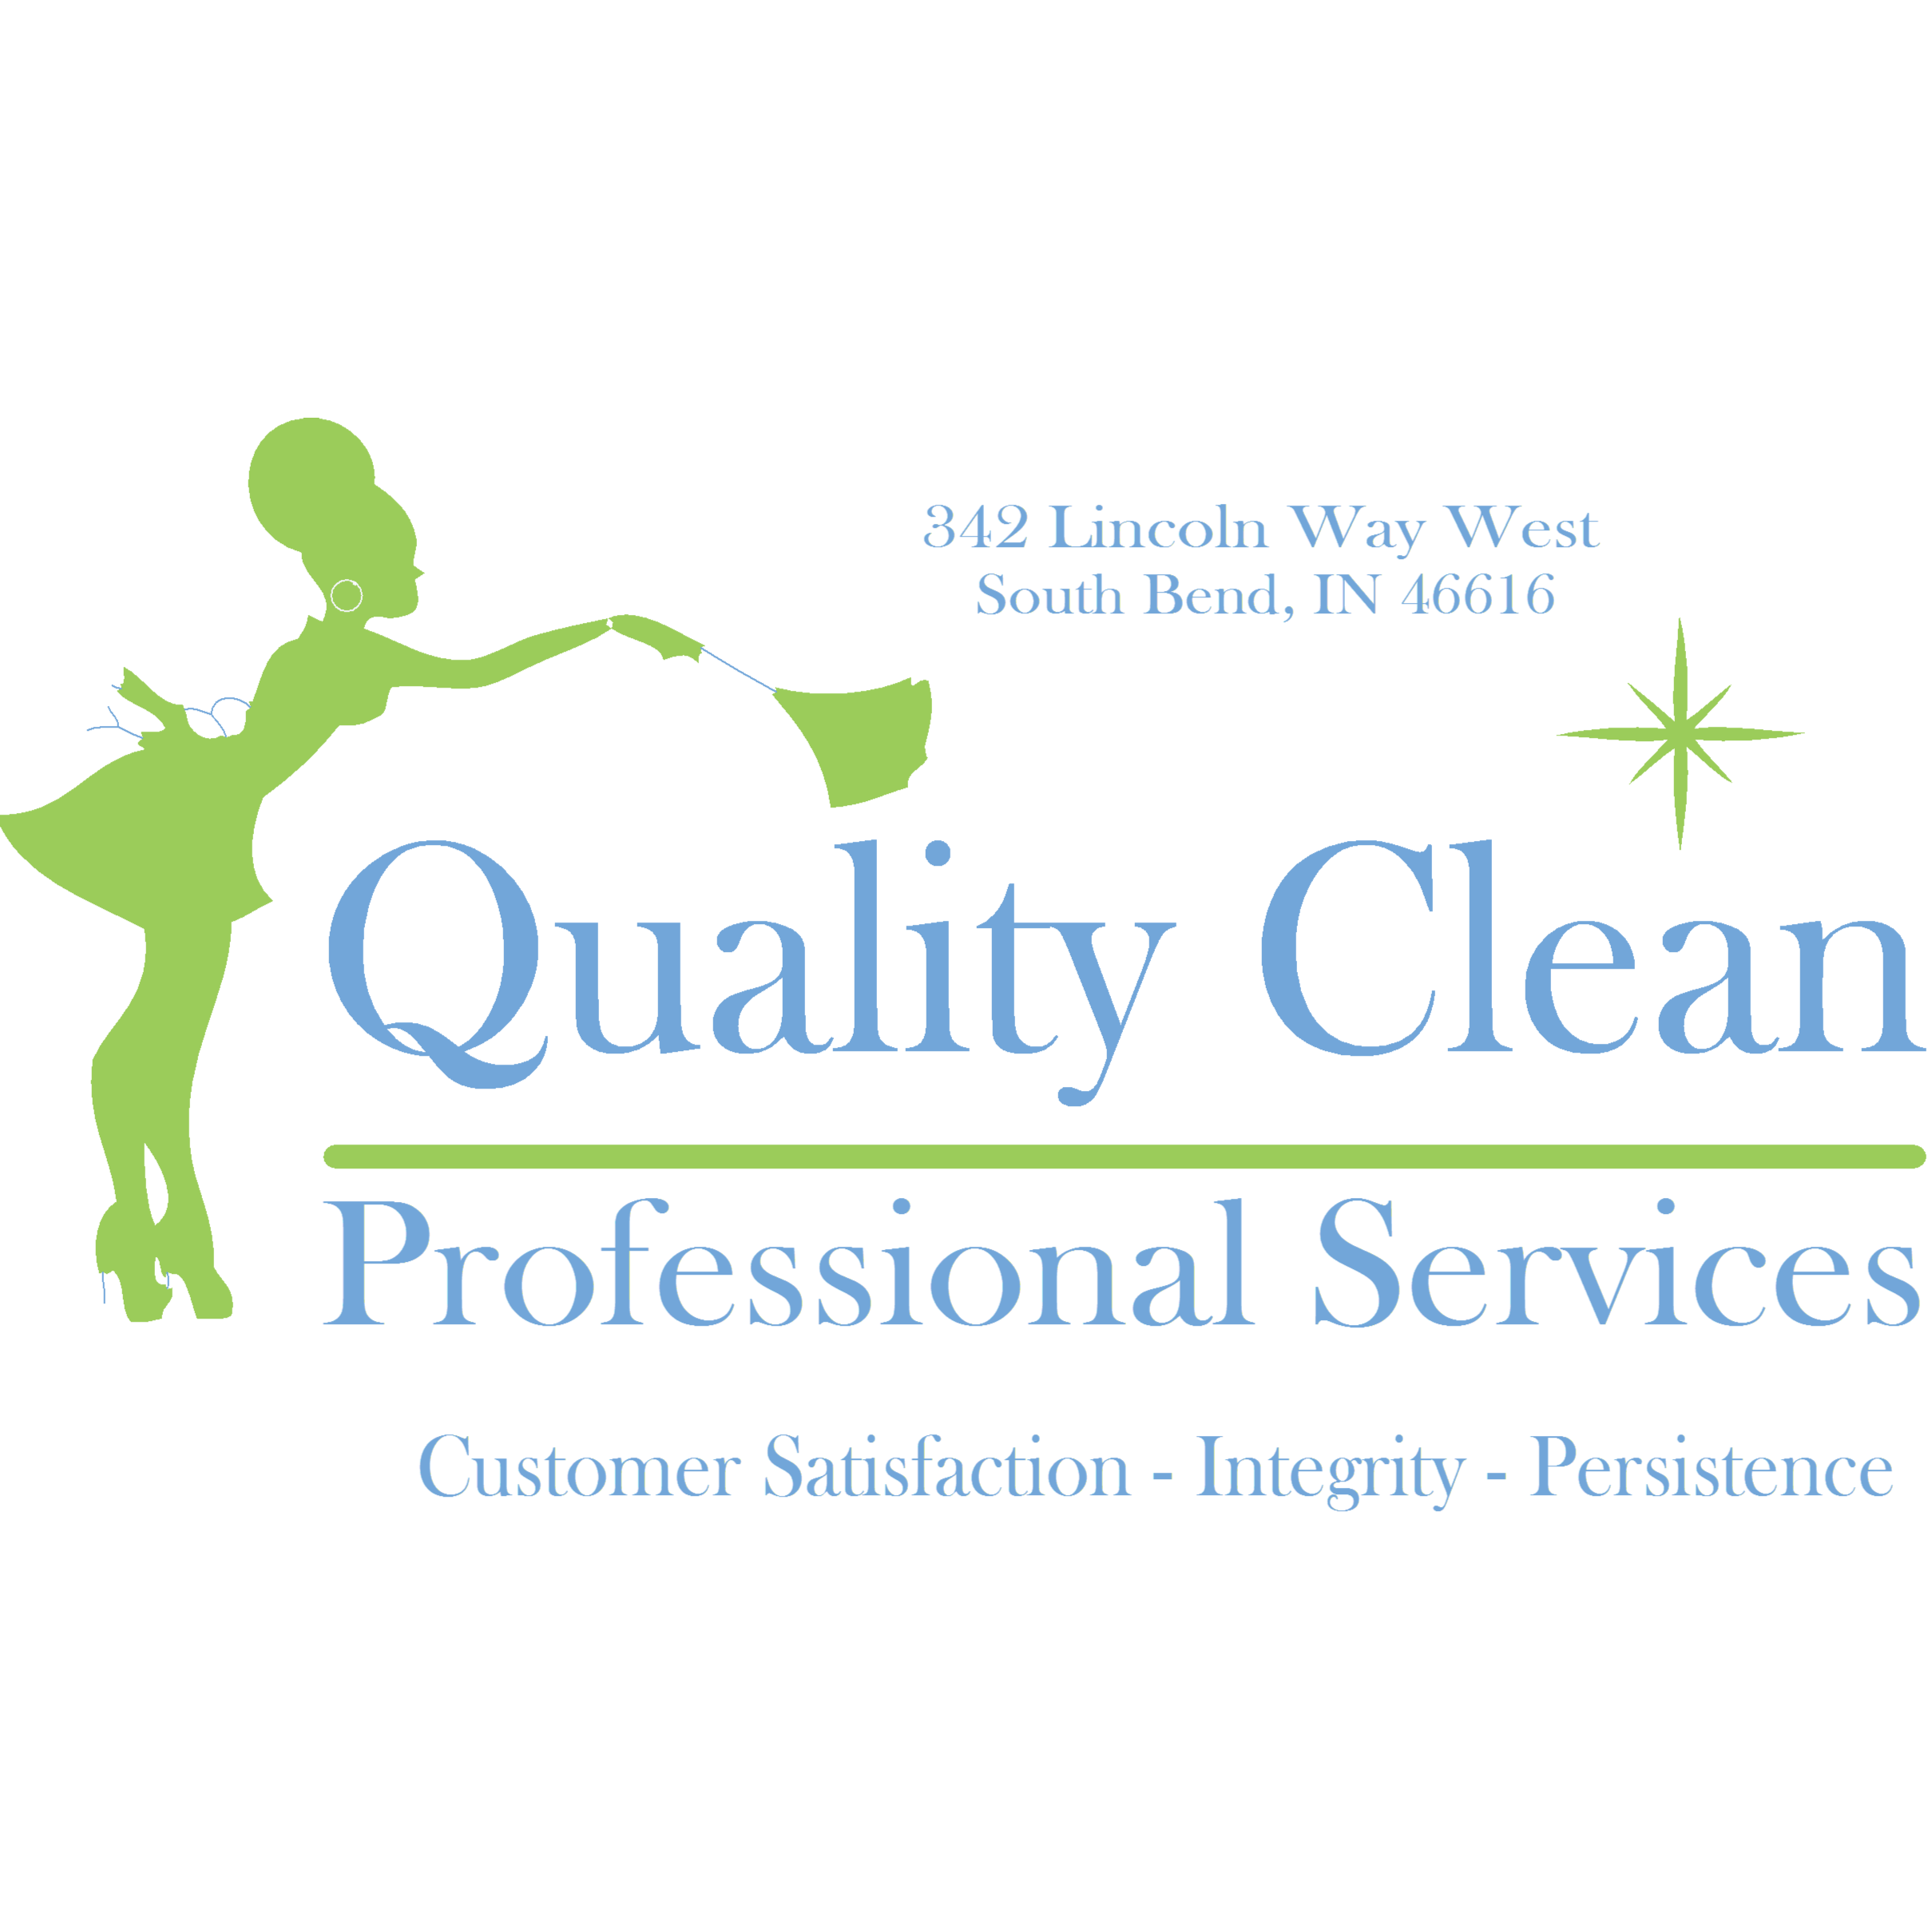 Quality Clean Professional Services image 5